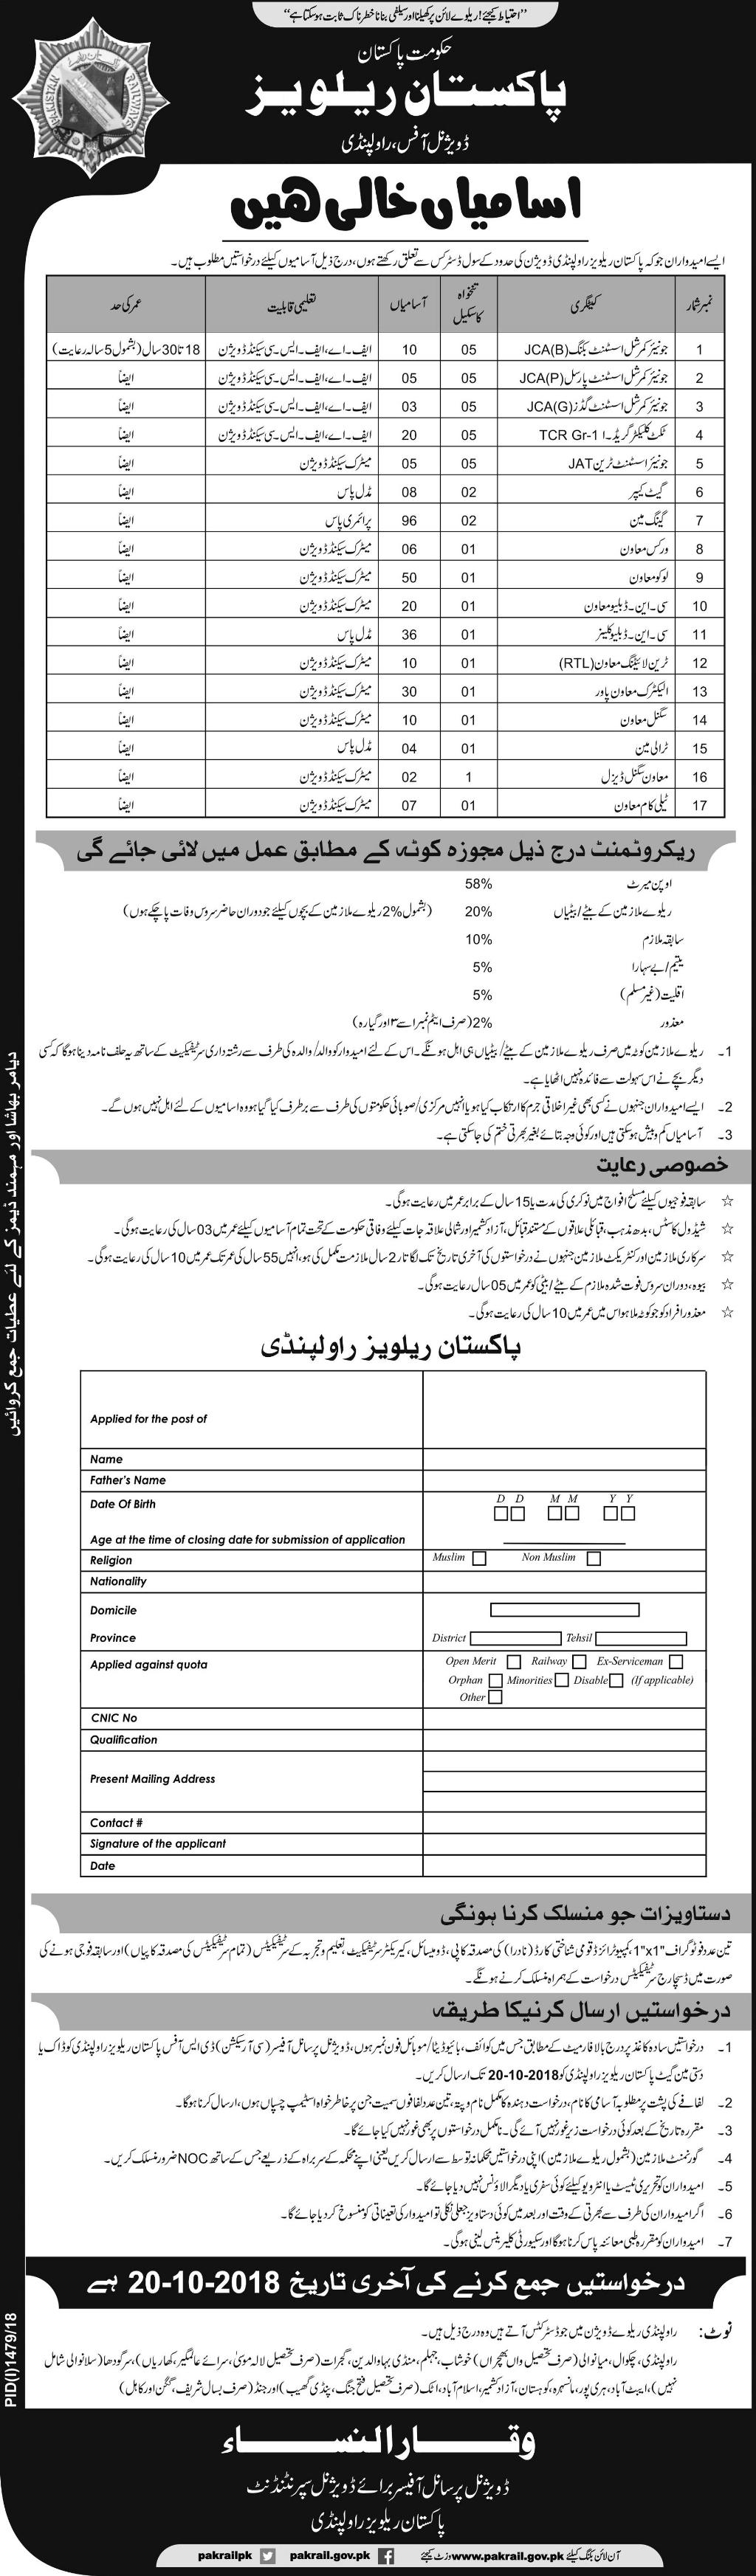 Pakistan Railways Divisional Office Rawalpindi Jobs 2018